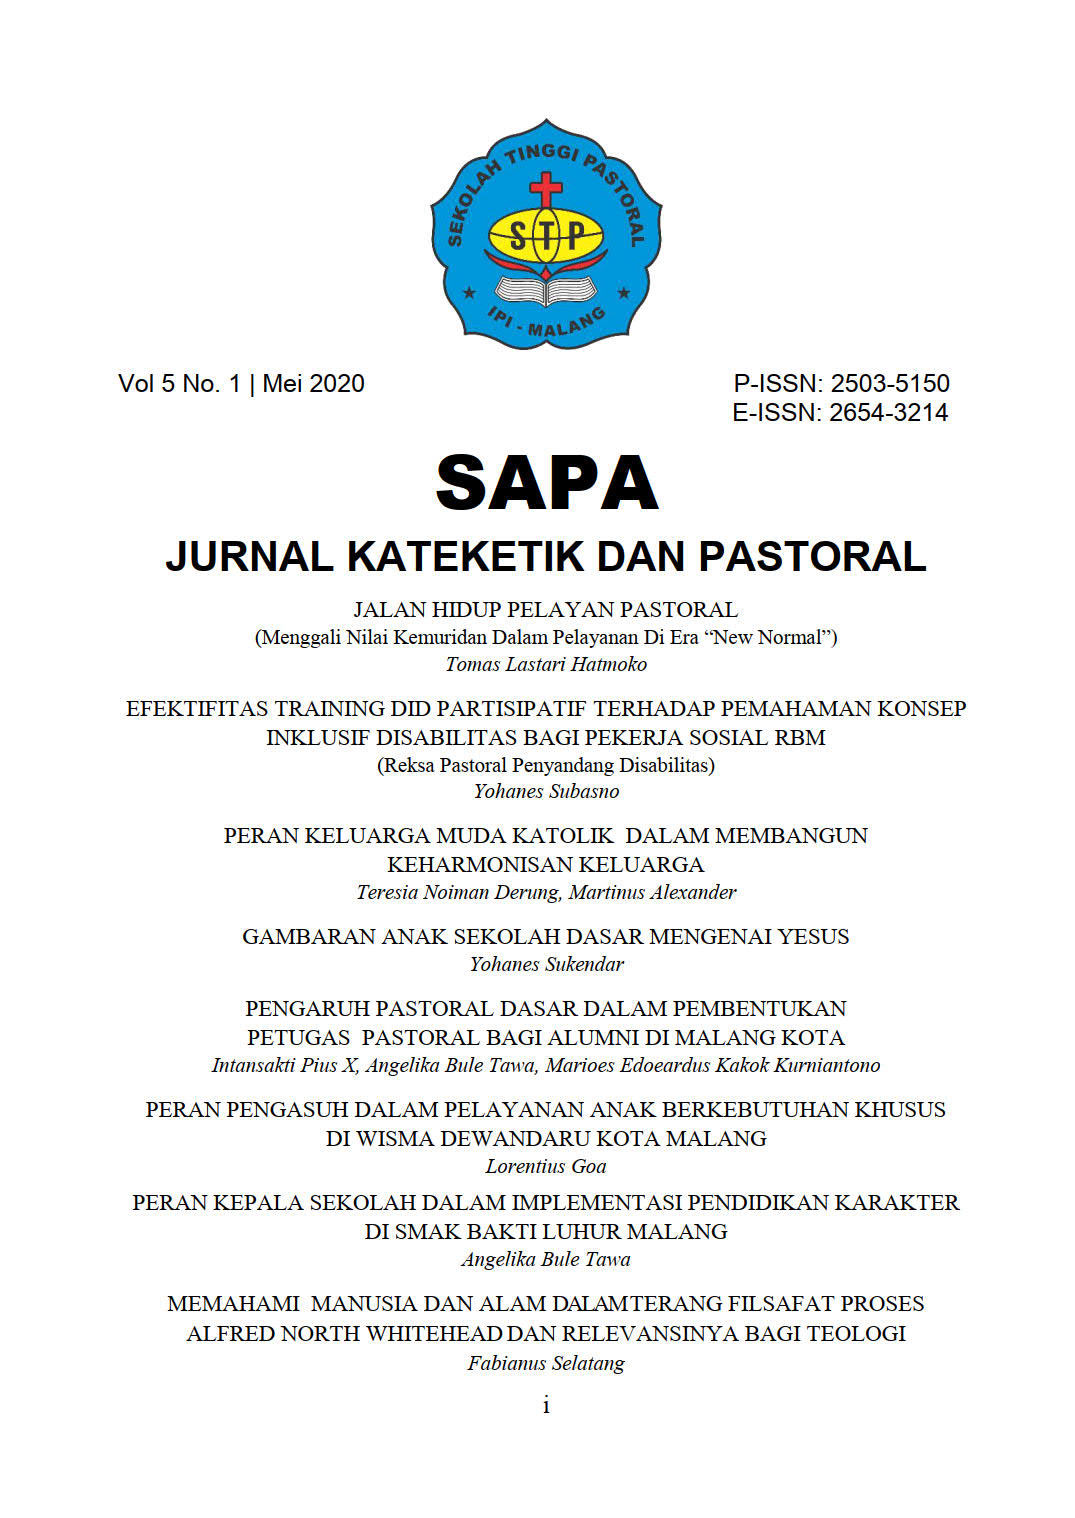 SAPA volume 5 number 1